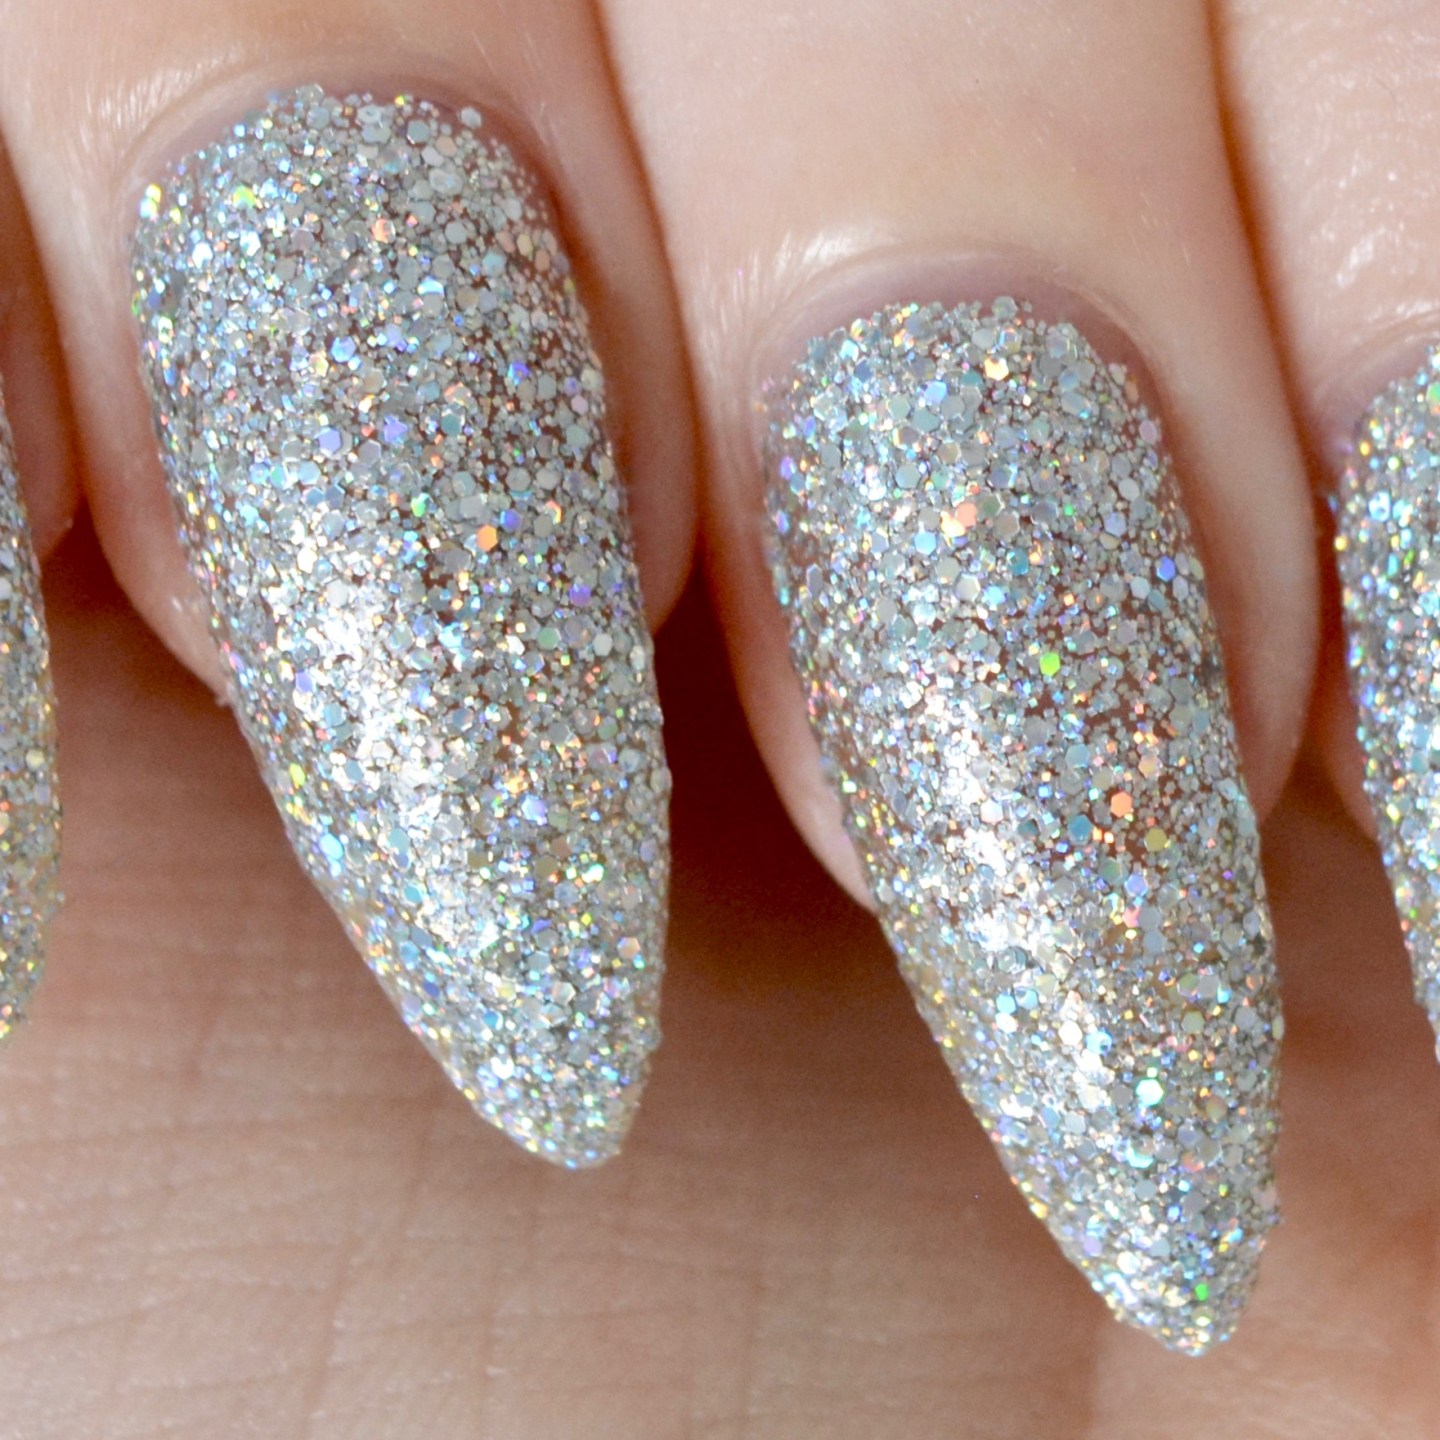 Floss Gloss Glitters - Dimepiece, a silver holographic glitter in a clear base